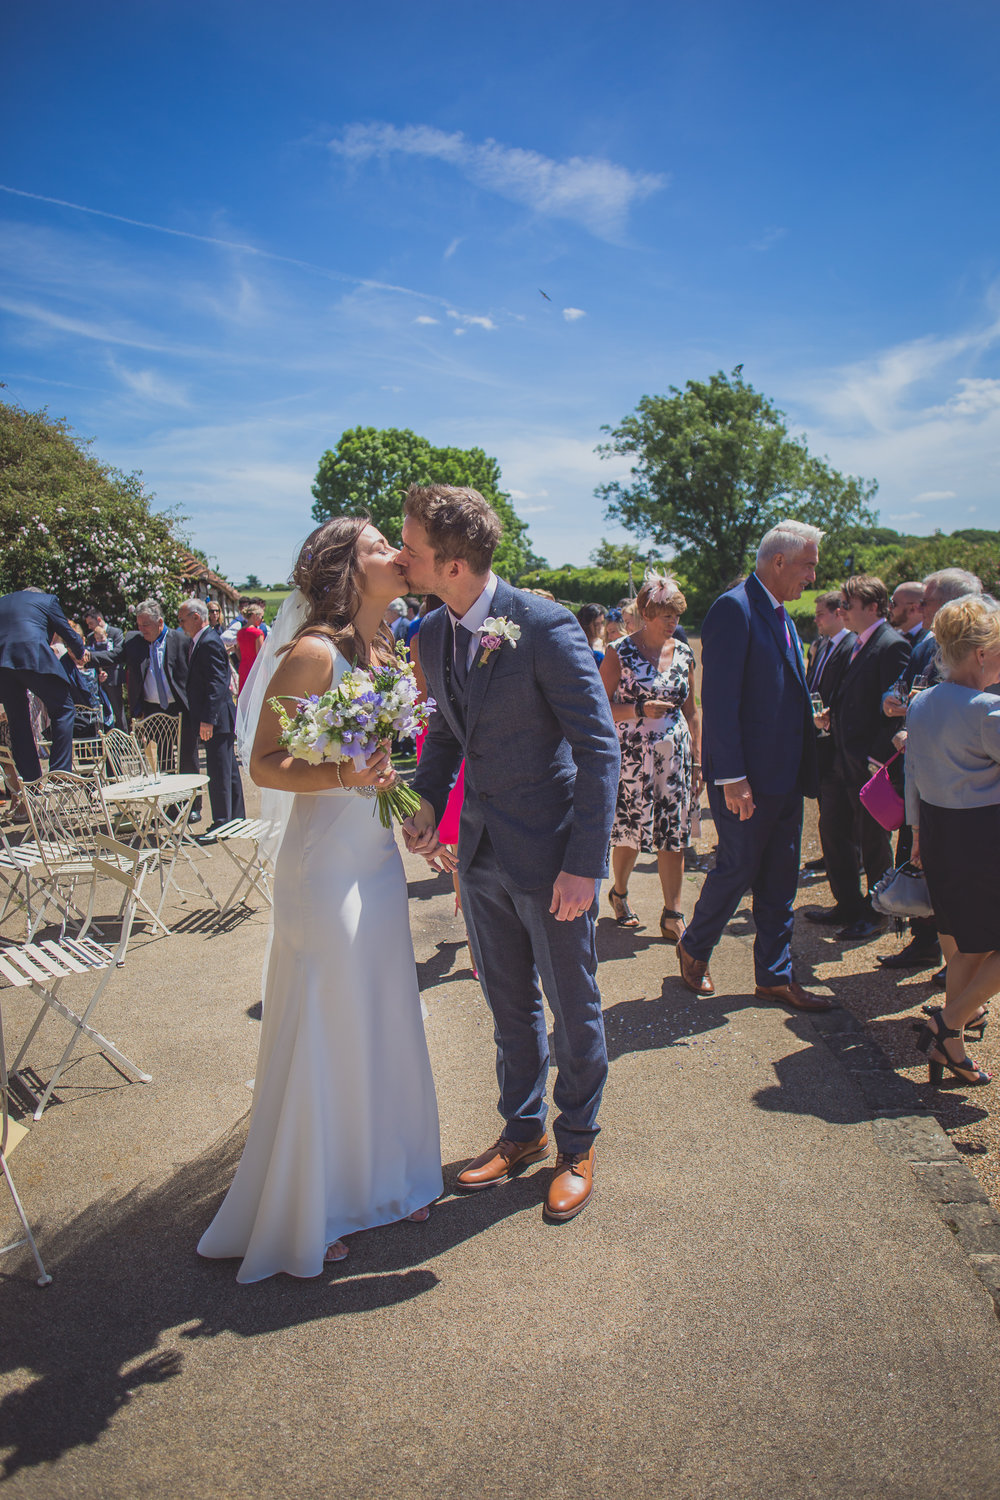 Grittenham Barn female wedding photographers west sussex petworth social-78.jpg